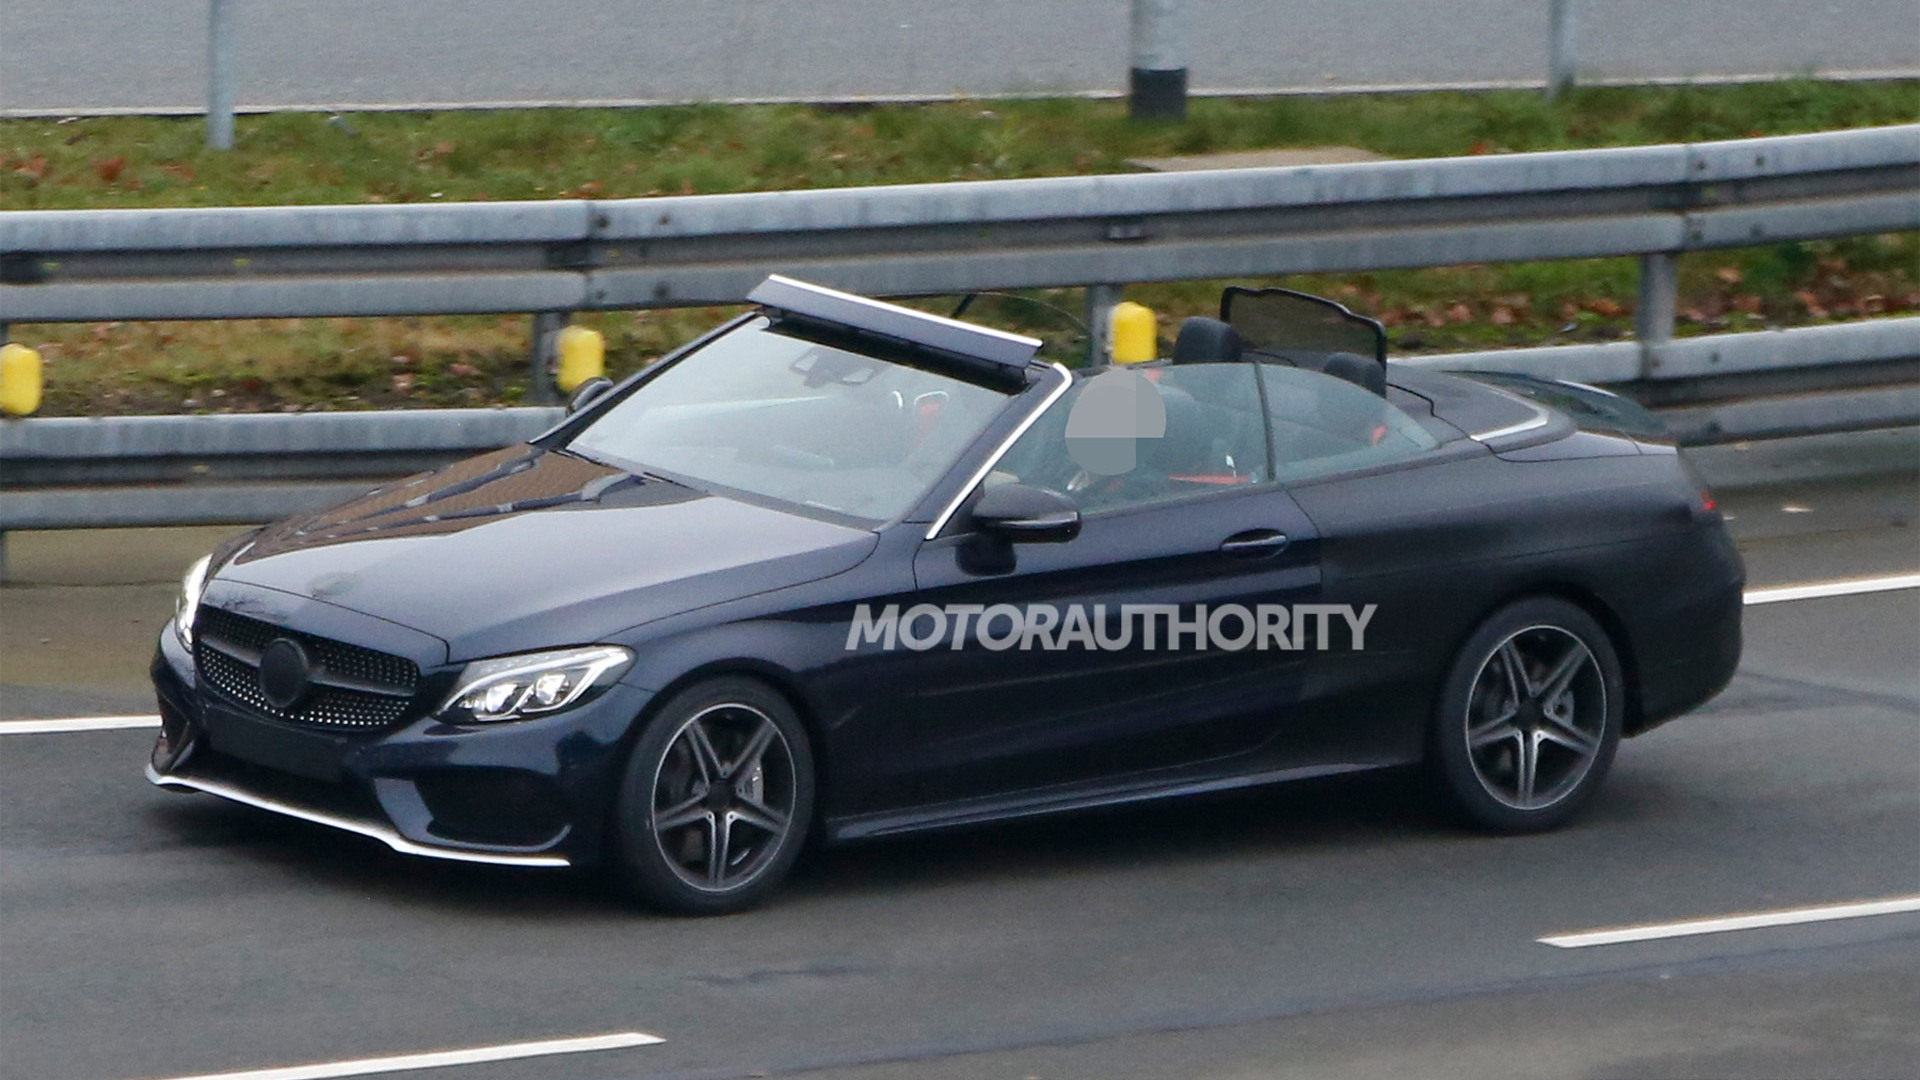 2017 Mercedes Benz C Cl Cabriolet Spy Shots Image Via S Baldauf